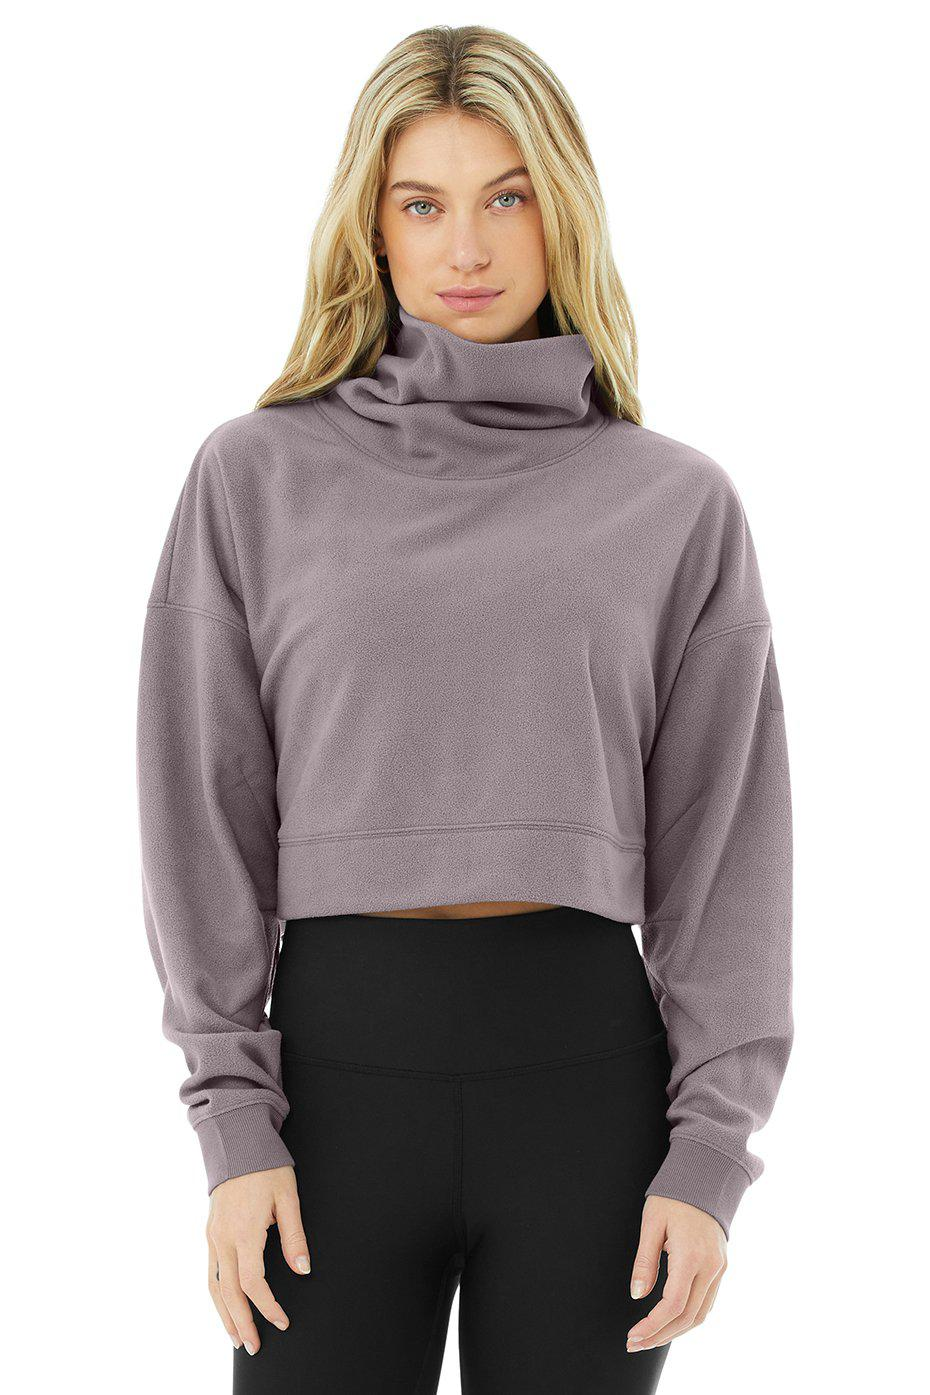 Cropped Warm Up Pullover - Purple Dusk